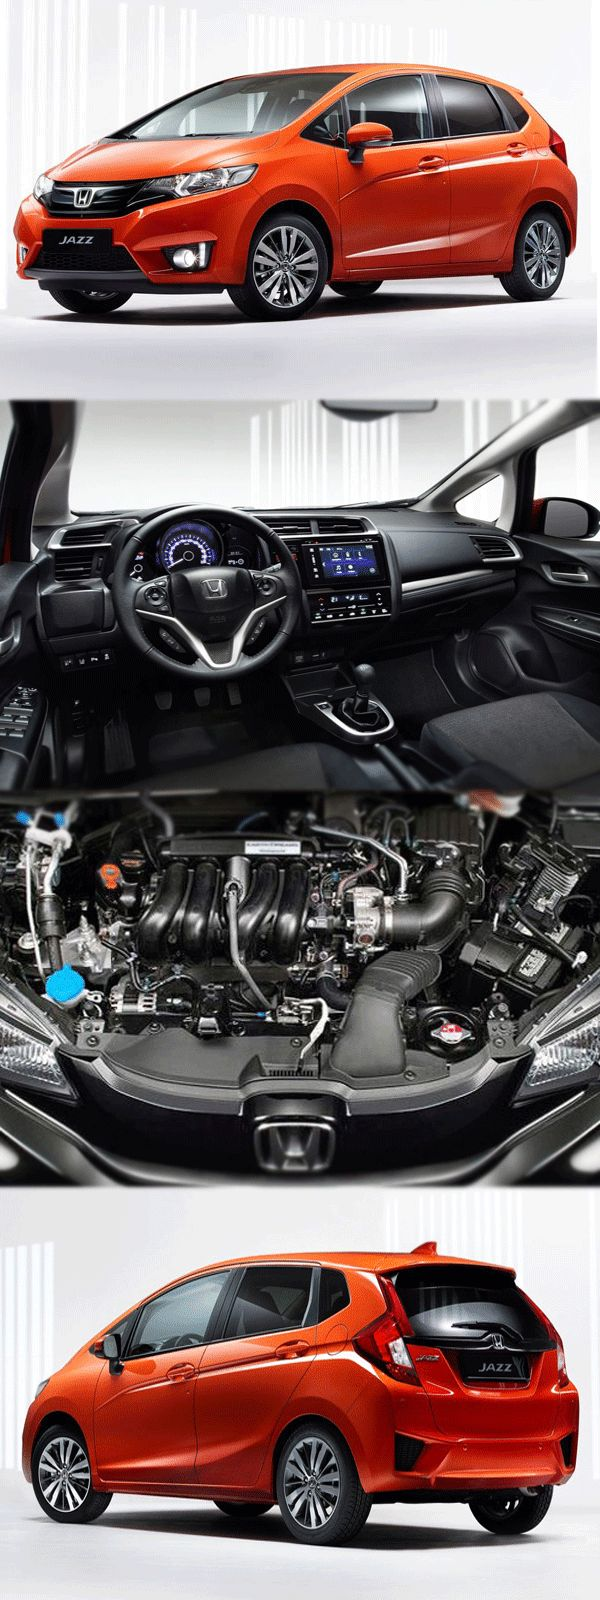 Honda jazz reviewed visit at http www idealengines co